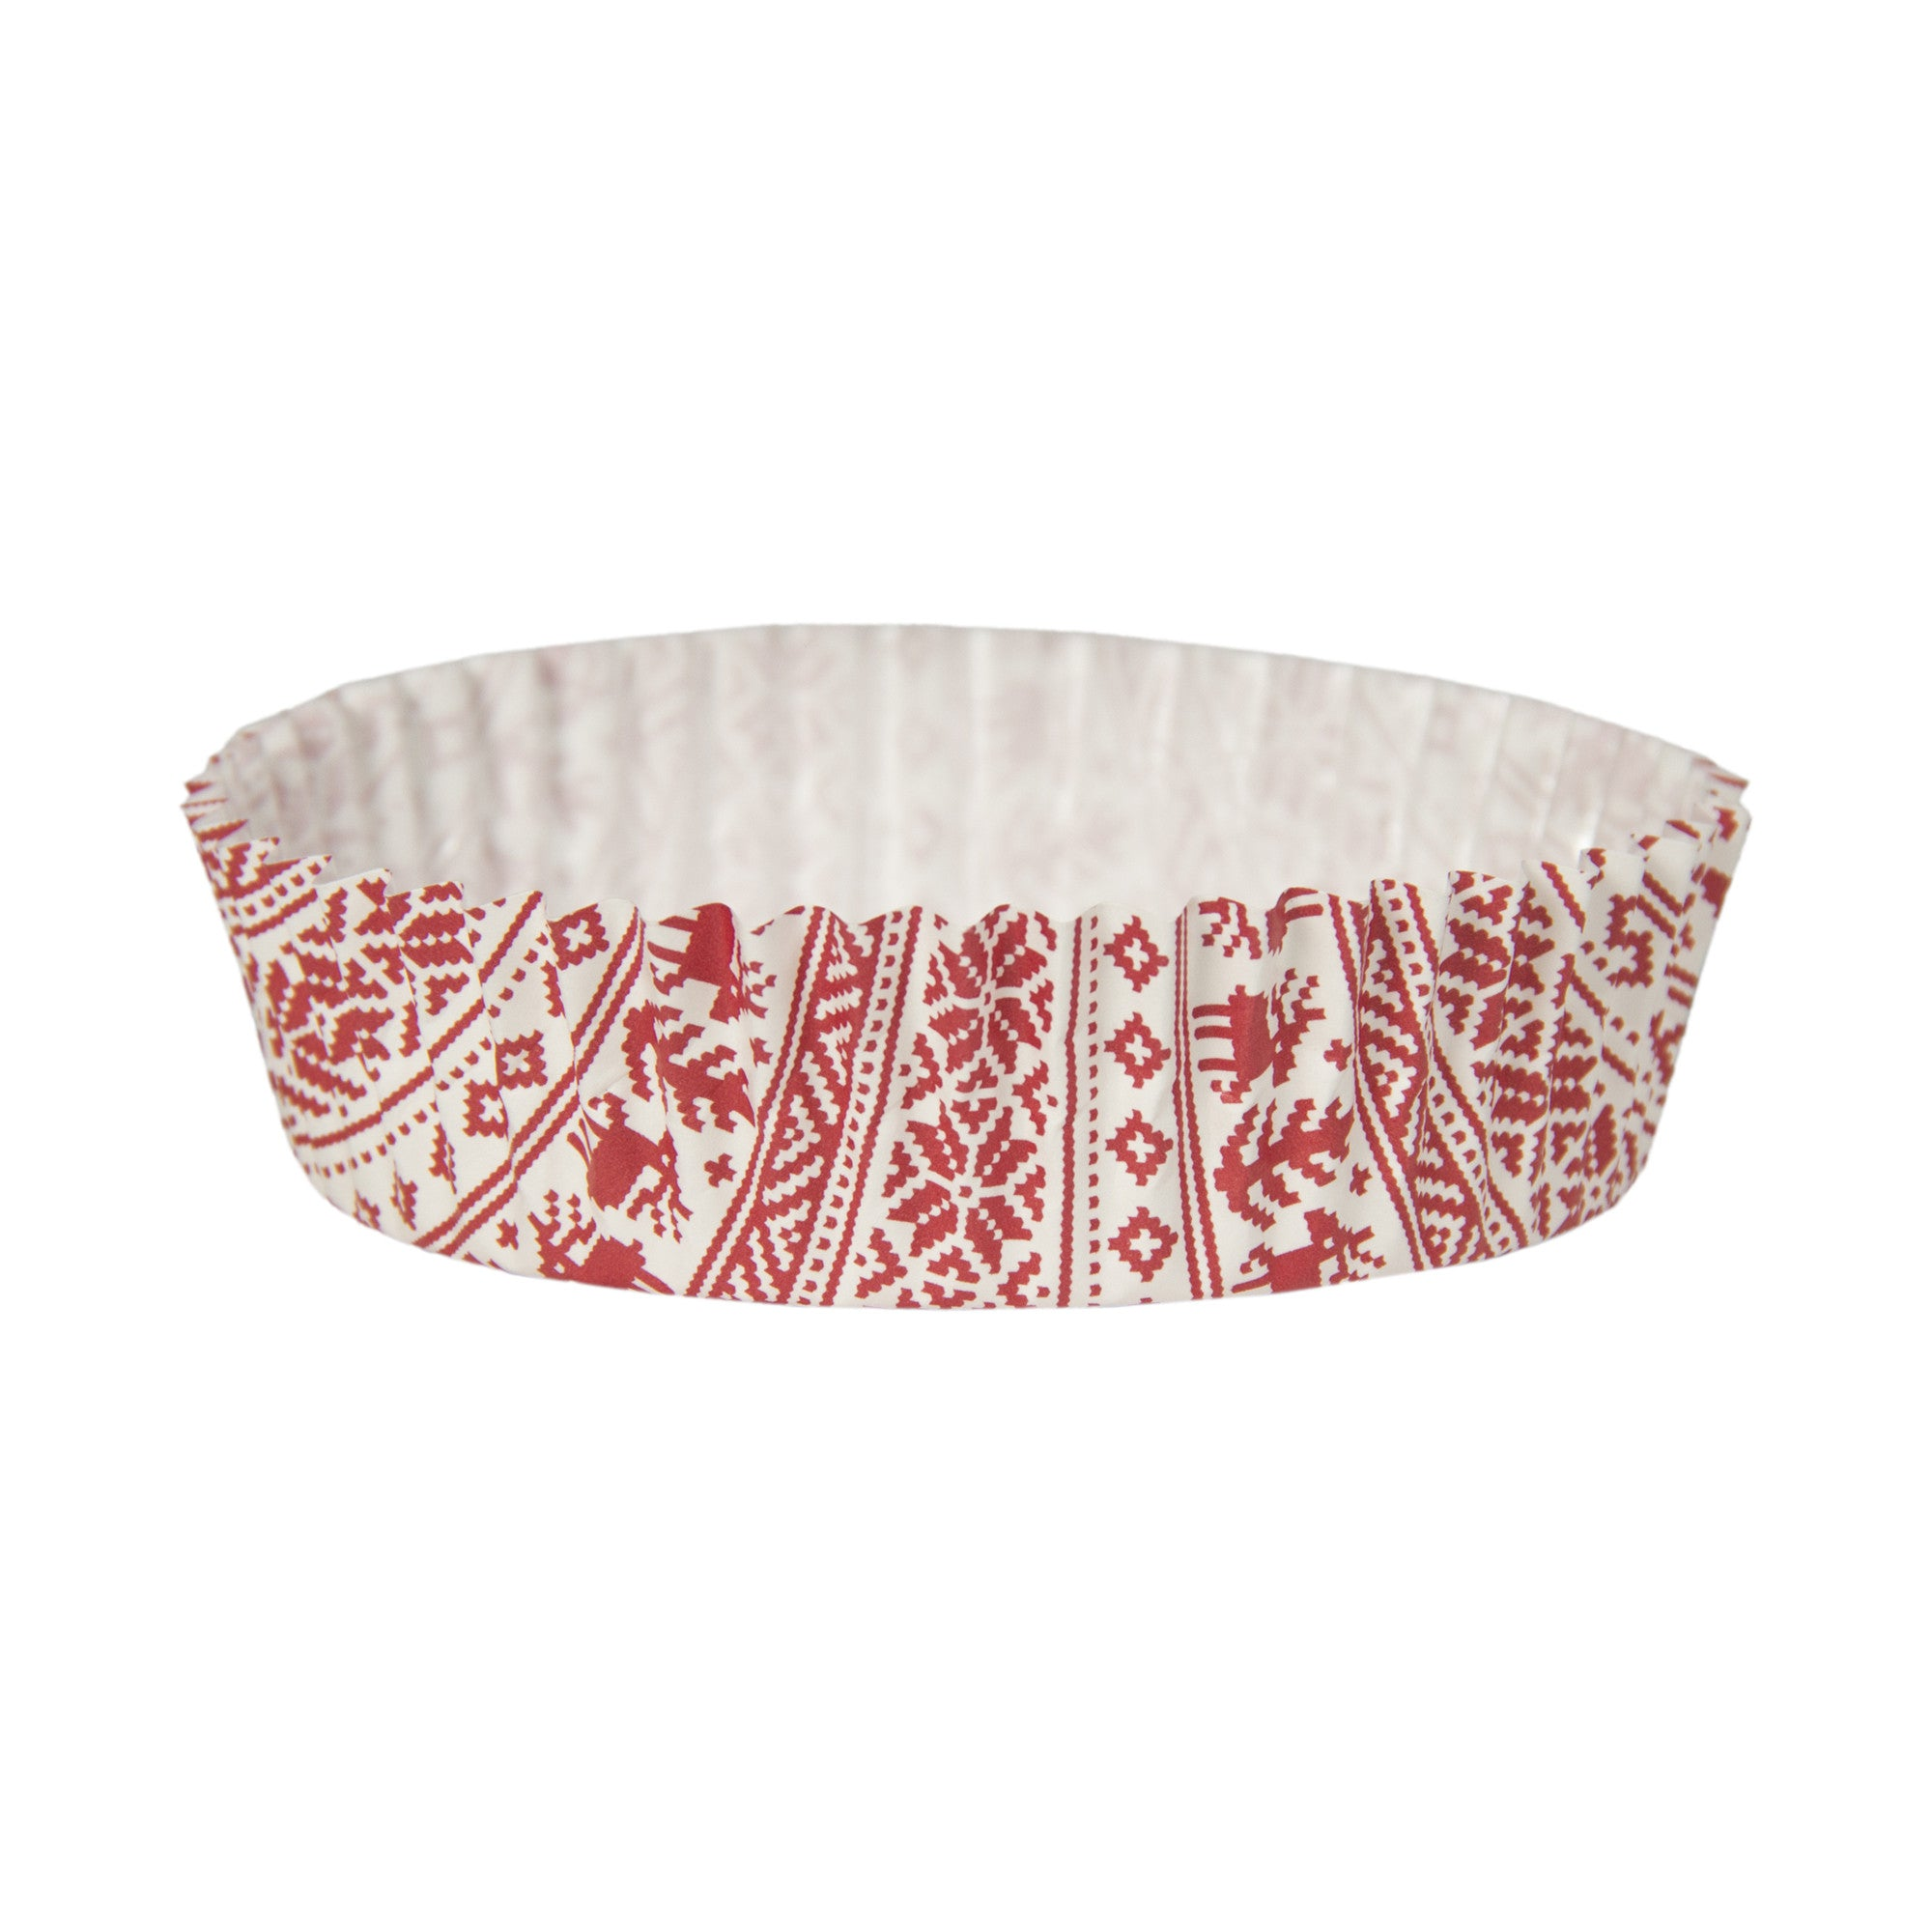 Ruffled Baking Cups, PTC10030RK - Welcome Home Brands